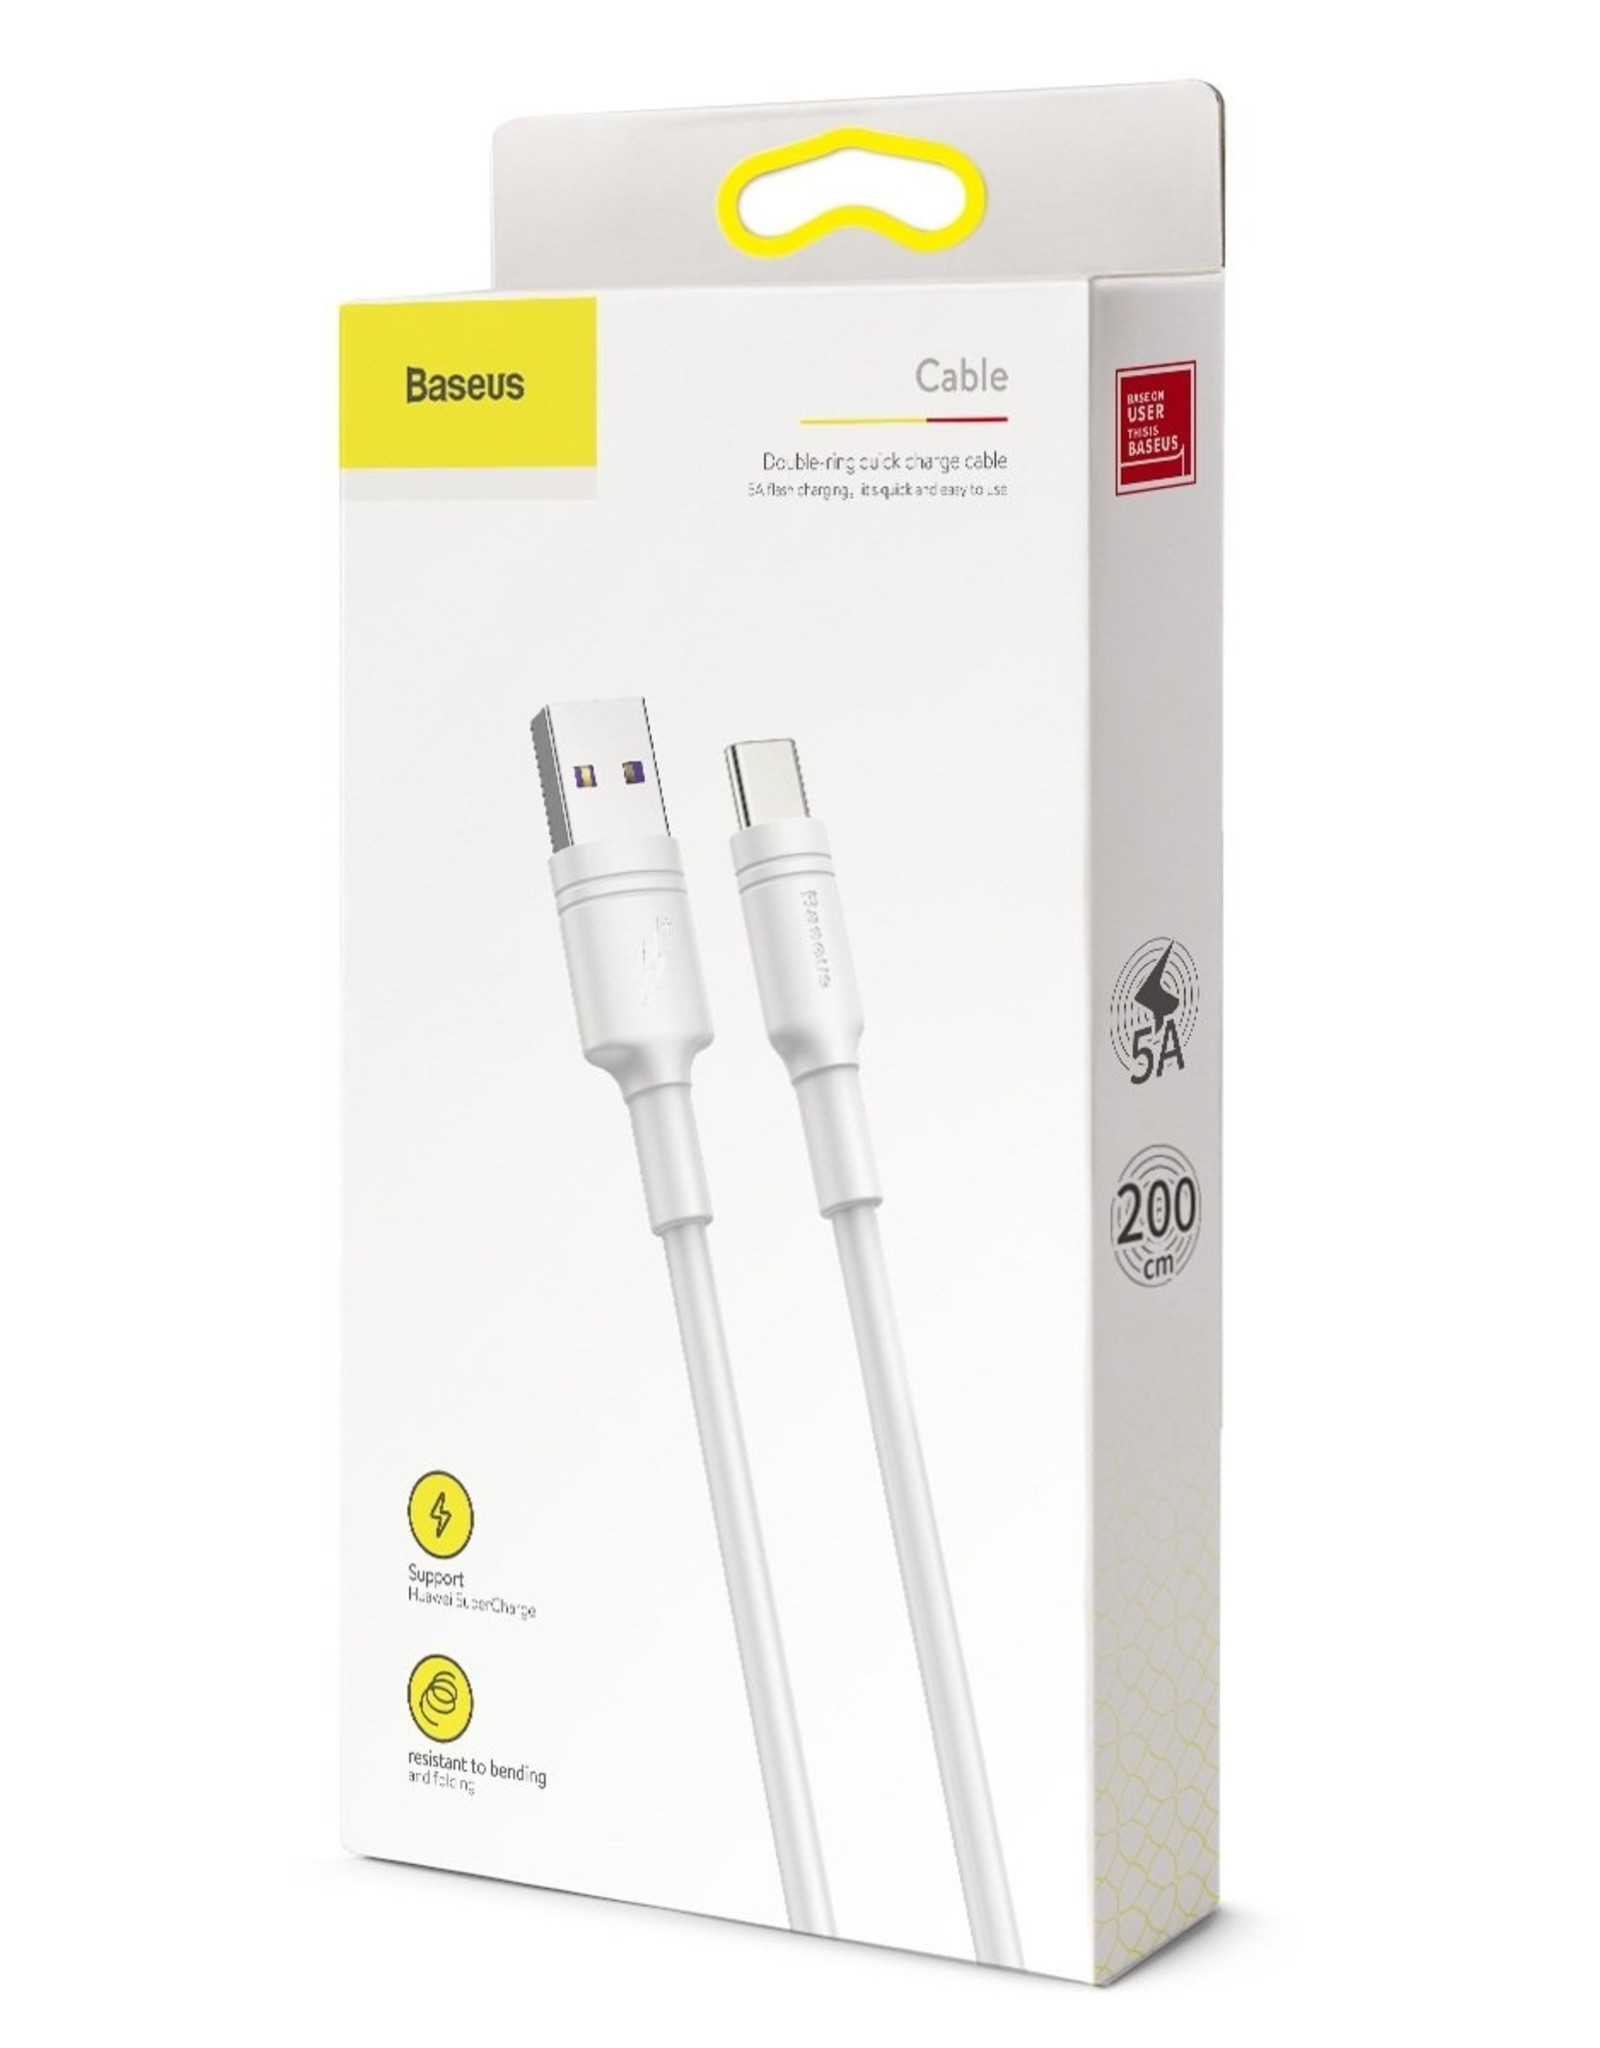 Baseus Baseus Double-ring Huawei Quick Charge Cable USB For Type-C 5A 1m White